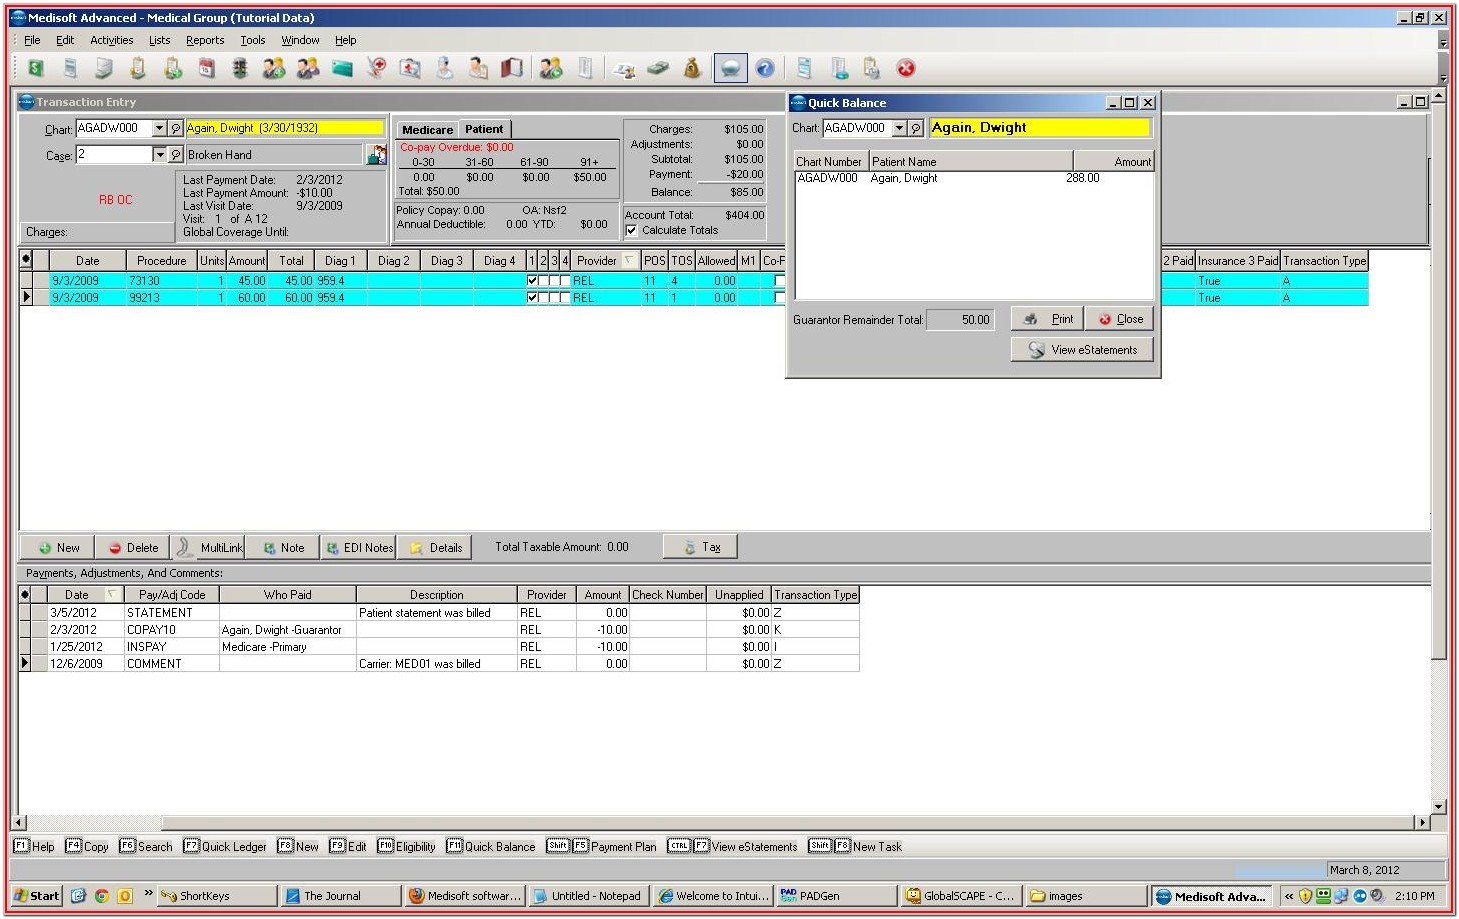 Cms 1500 Form Software